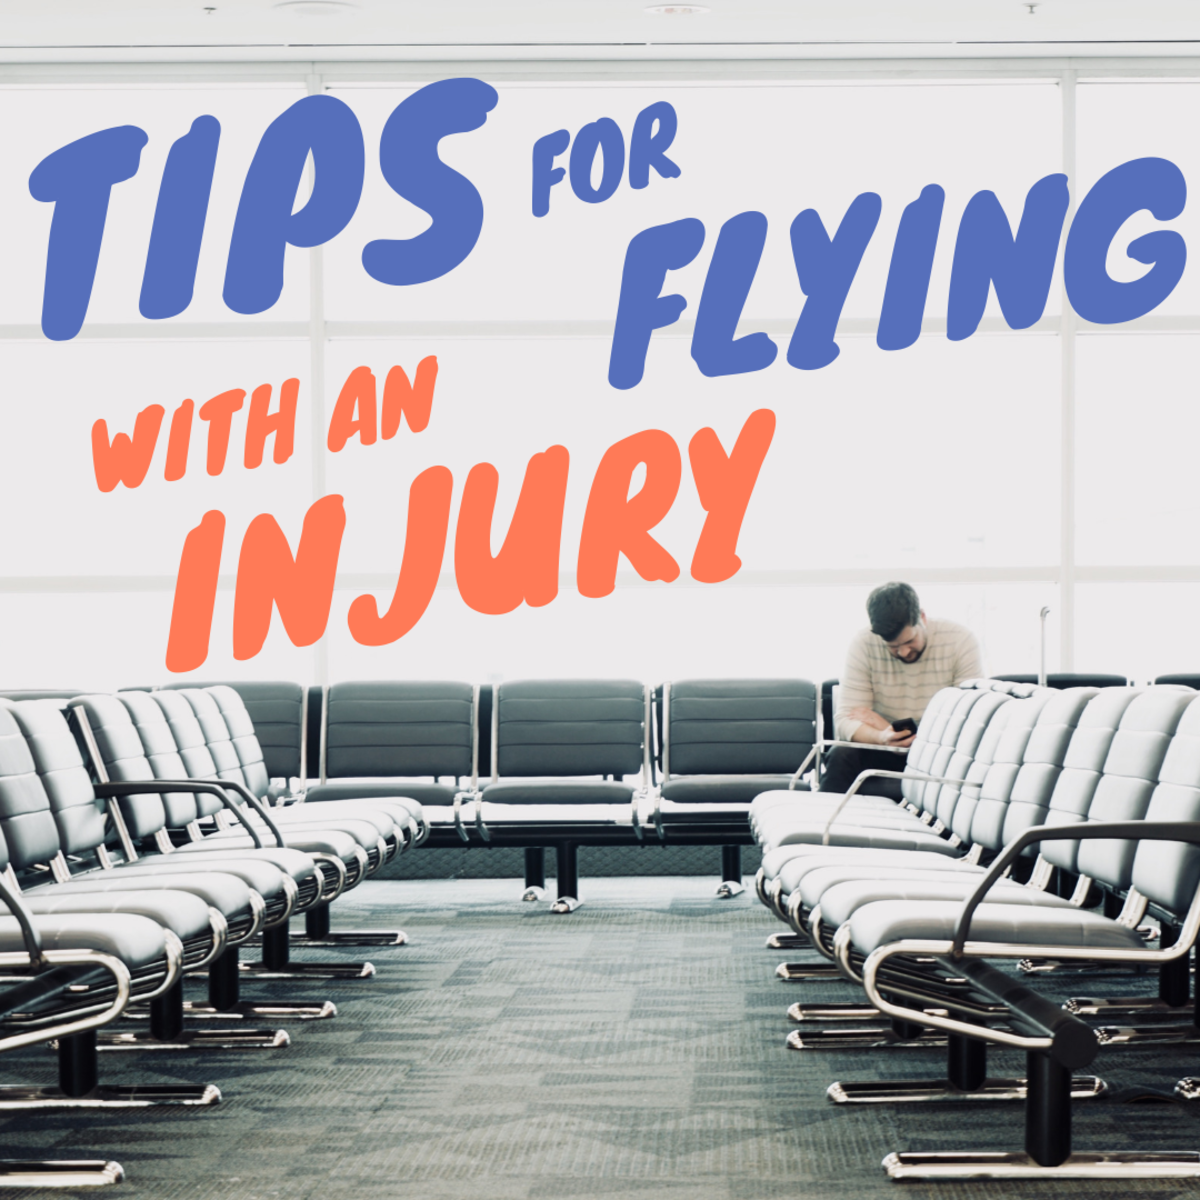 Navigating an airport is challenging for a traveler with a temporary injury.